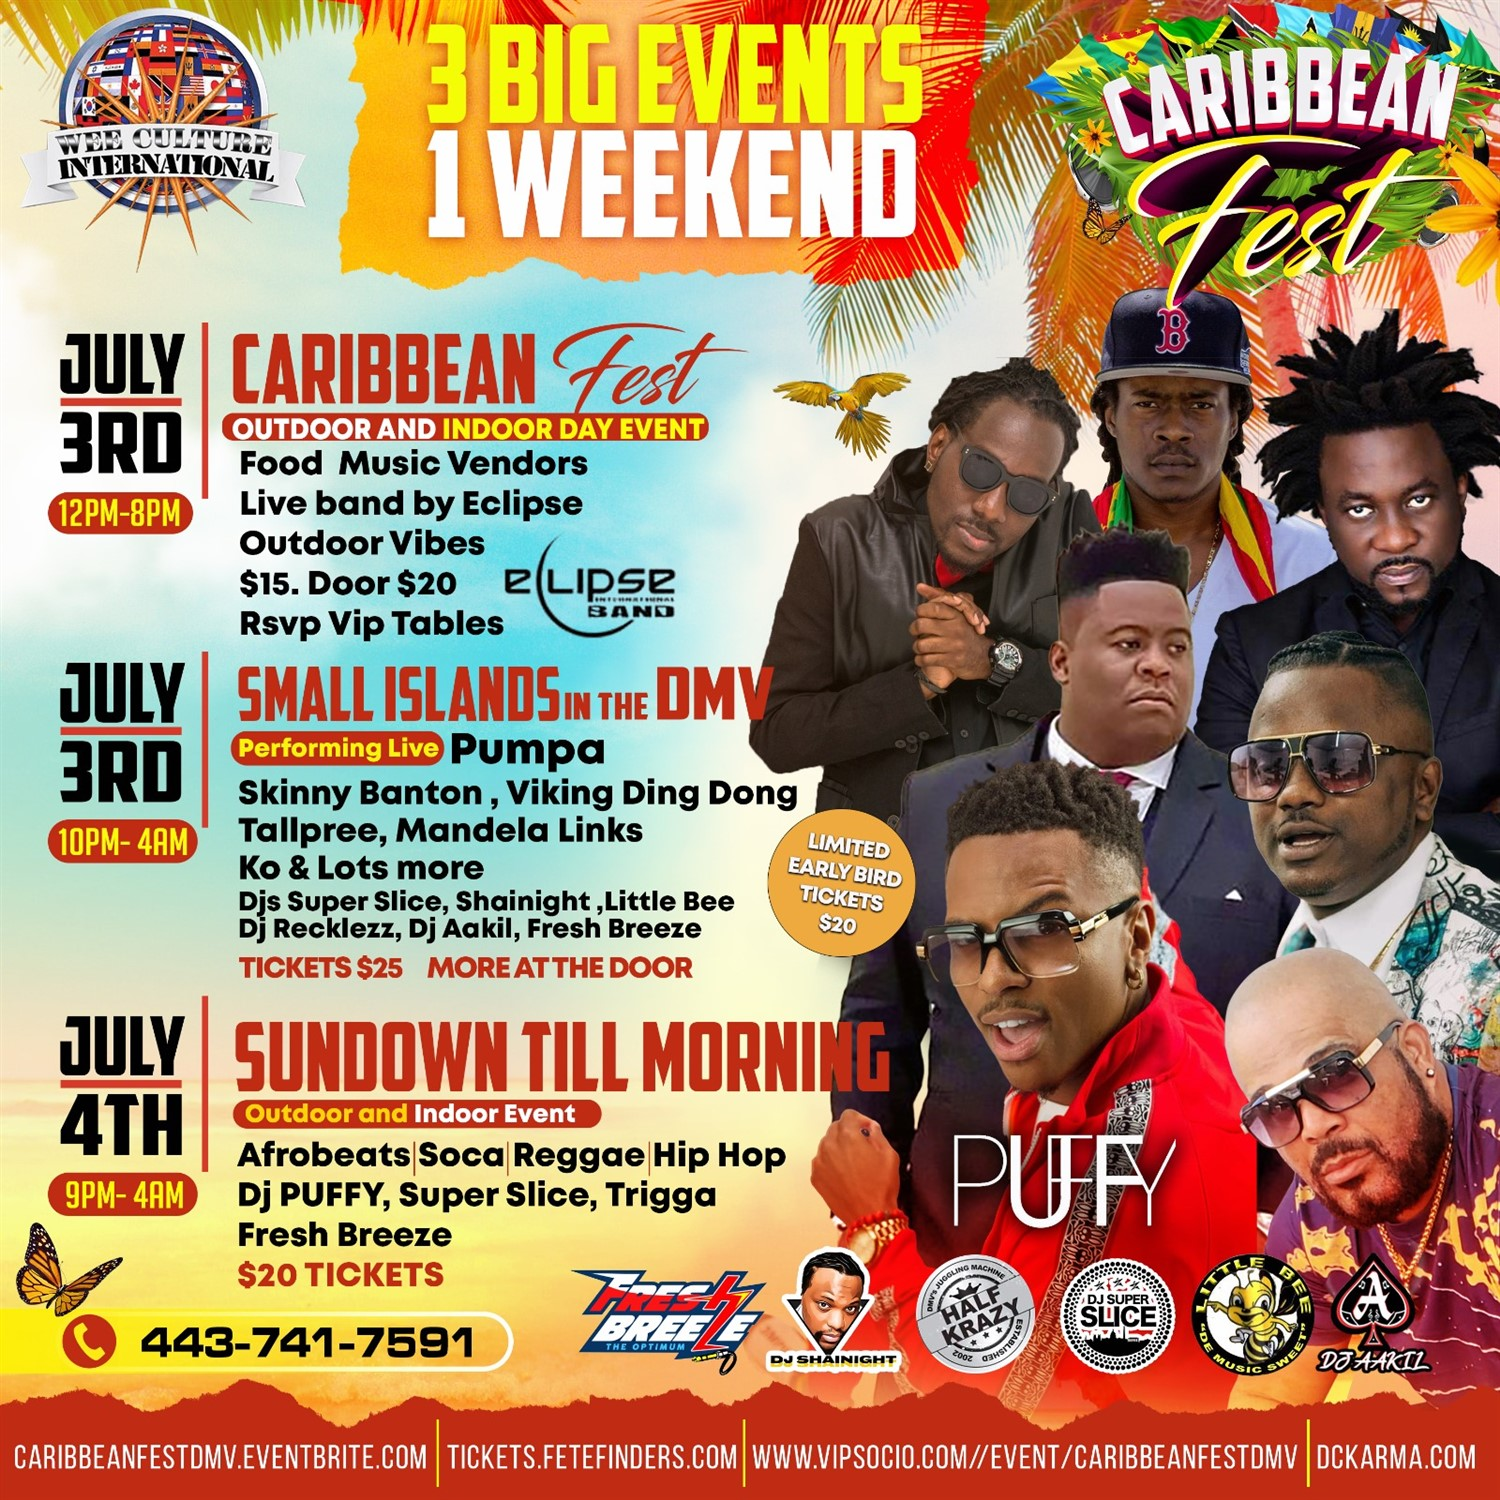 Caribbean Fest Caribbean Fest July 3rd-4th. Bringing the best of the Caribbean to you! on Jul 03, 12:00@Karma - Buy tickets and Get information on www.fetefinders.com tickets.fetefinders.com